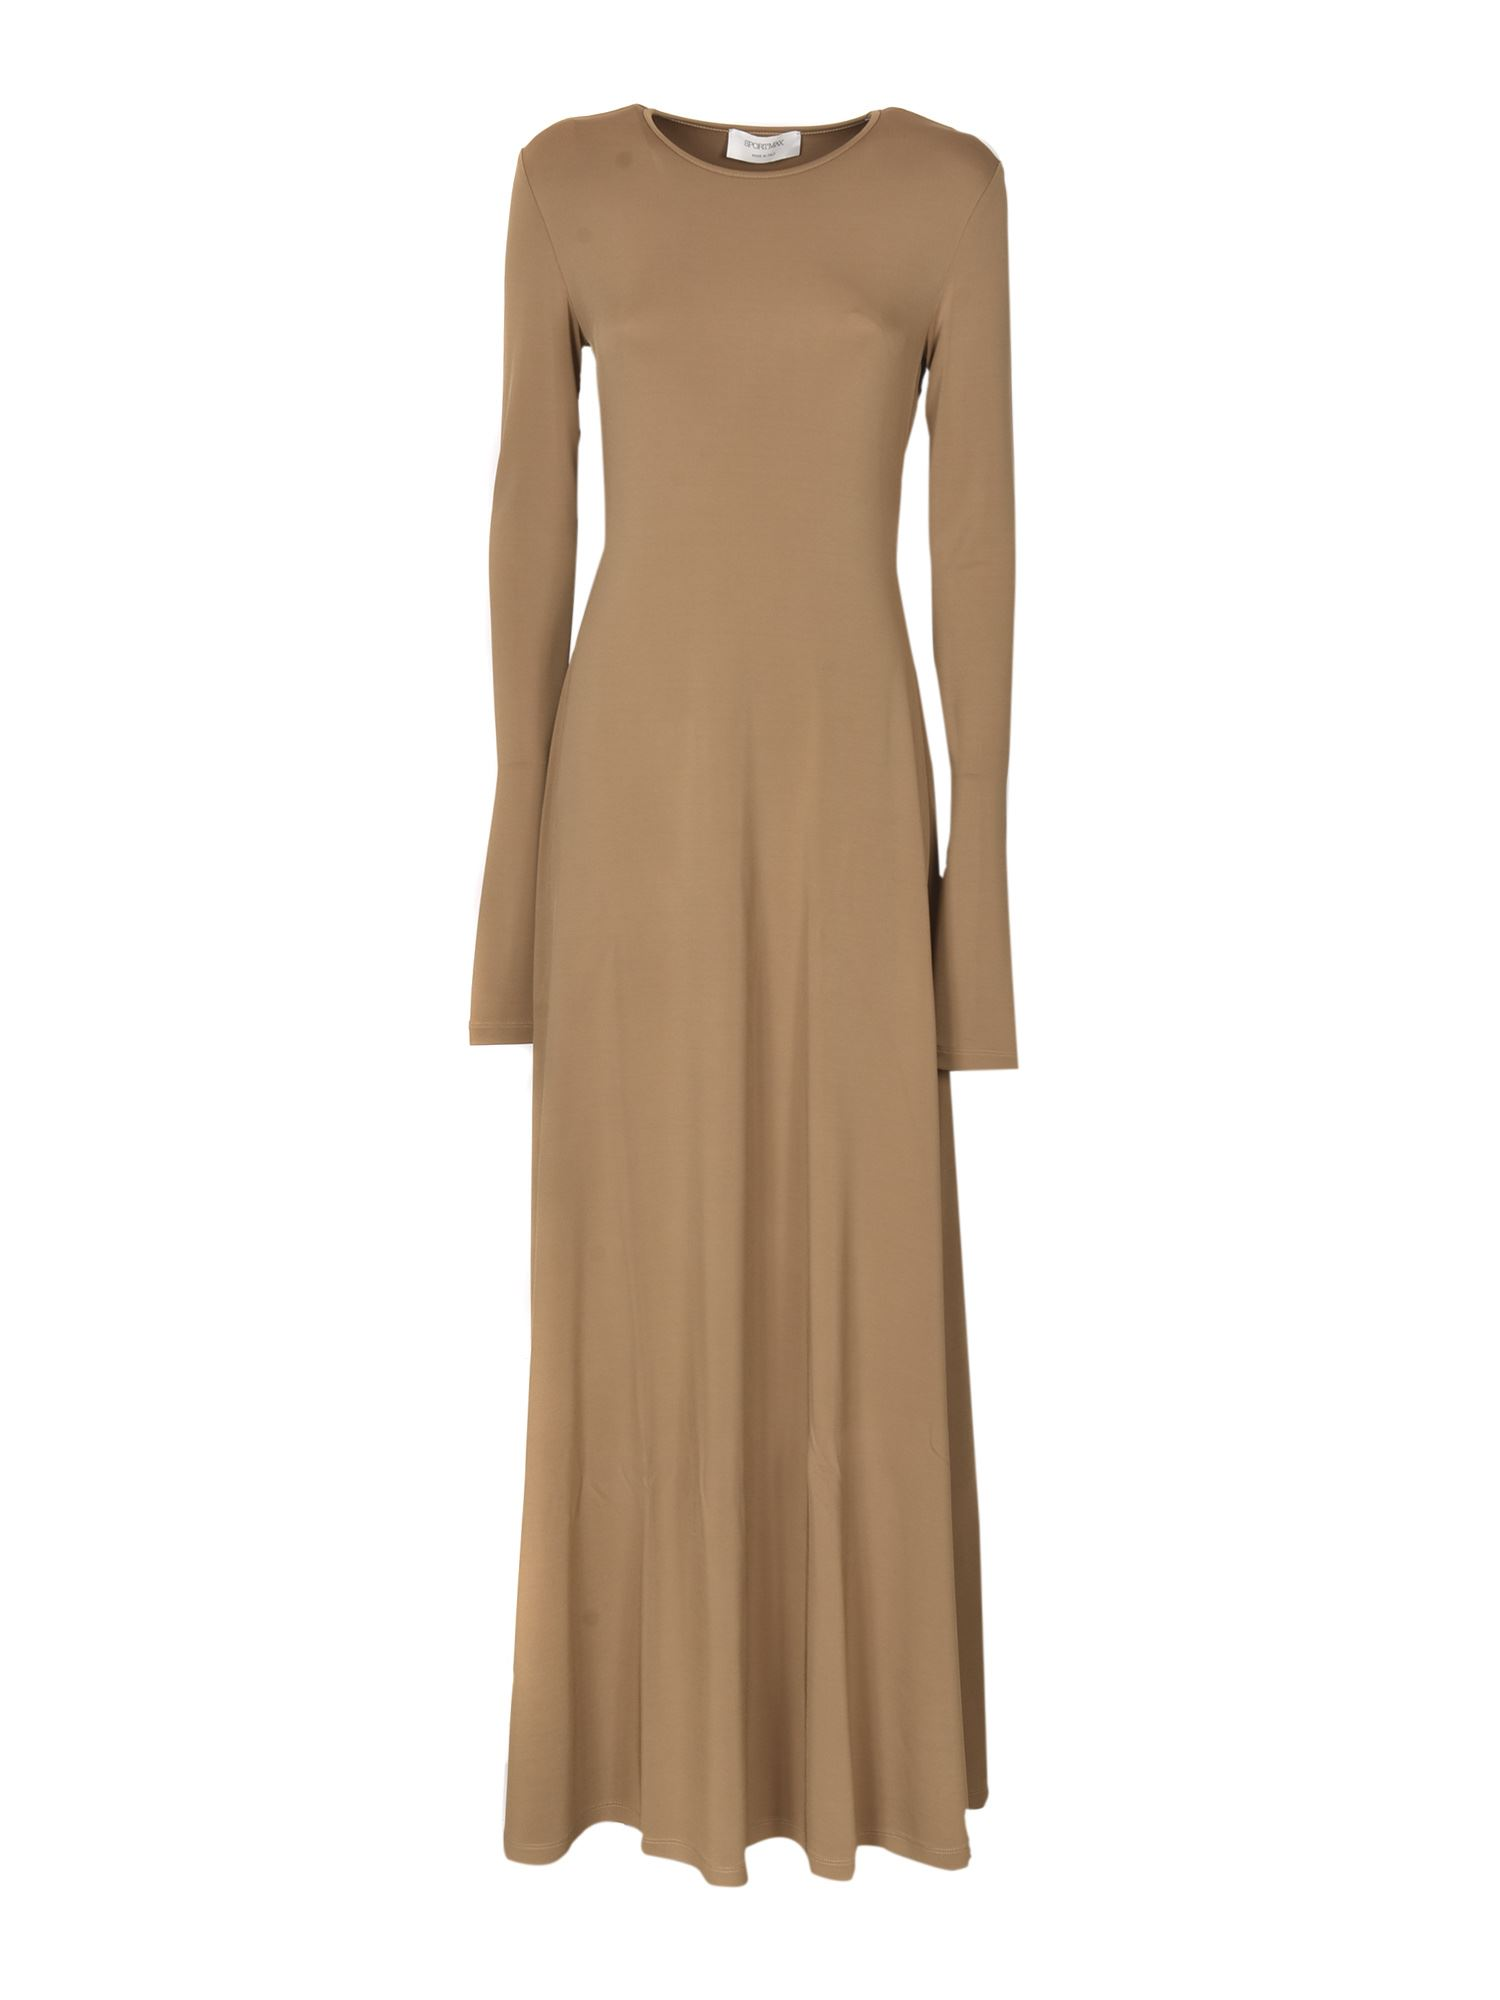 Sportmax REAR CUT-OUT JAMES DRESS IN CAMEL COLOR